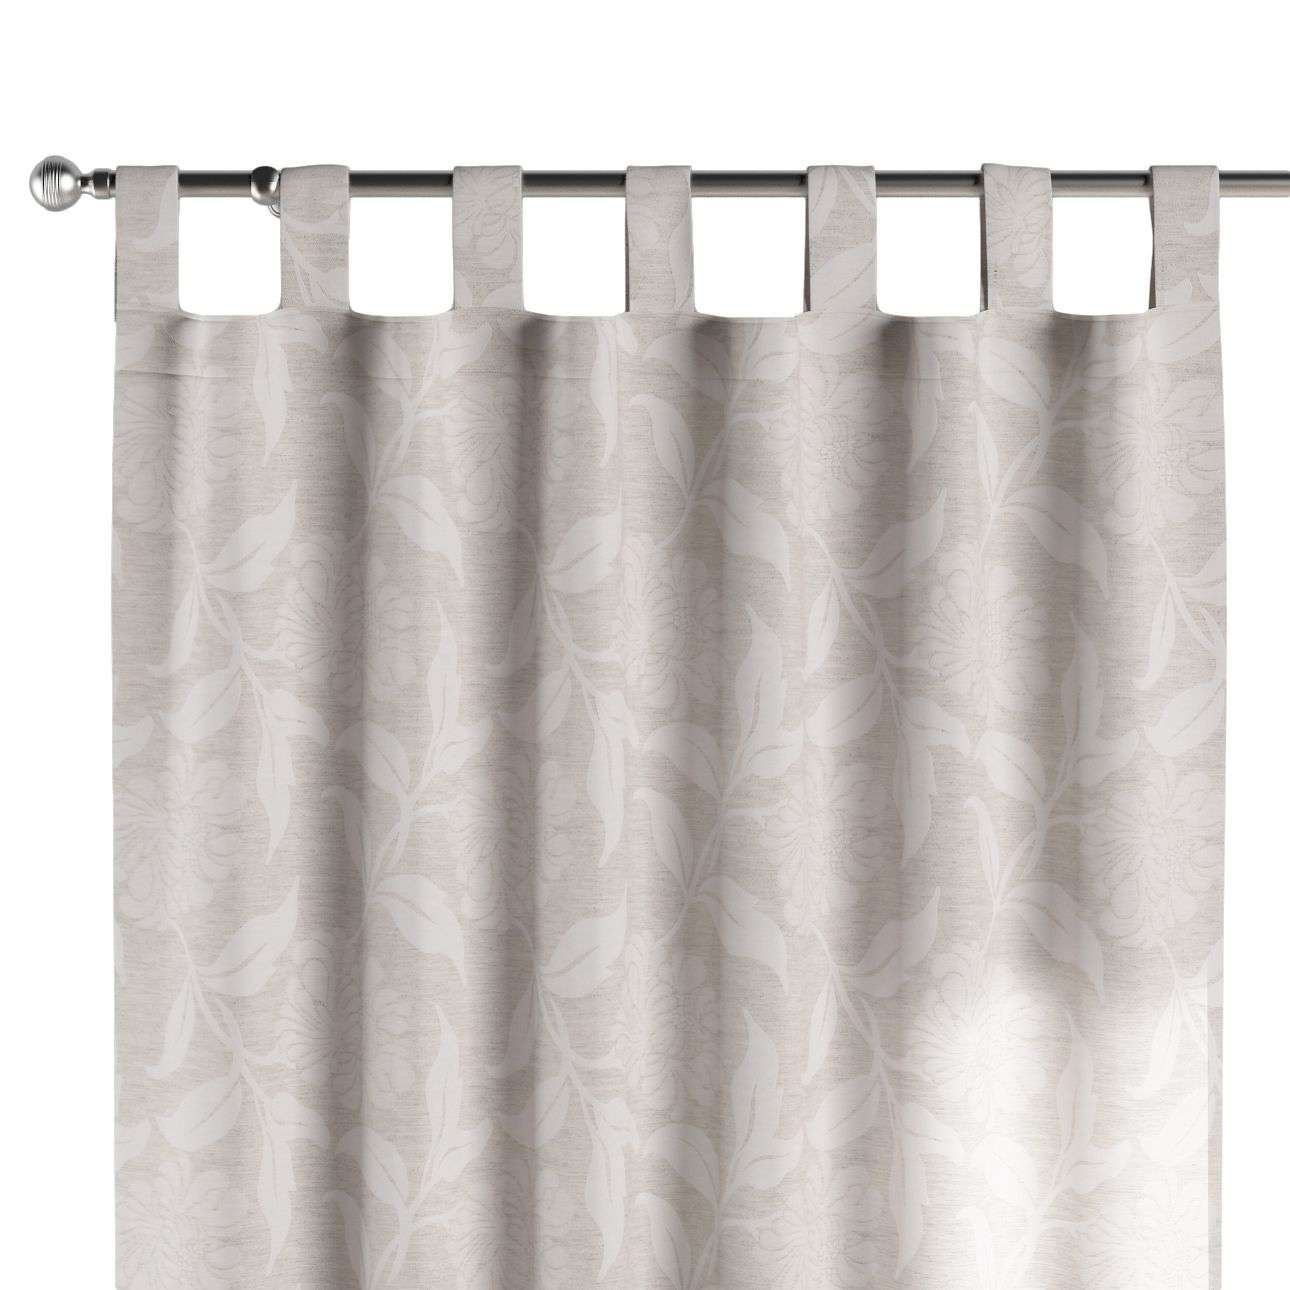 Tab top curtains in collection Venice, fabric: 140-51